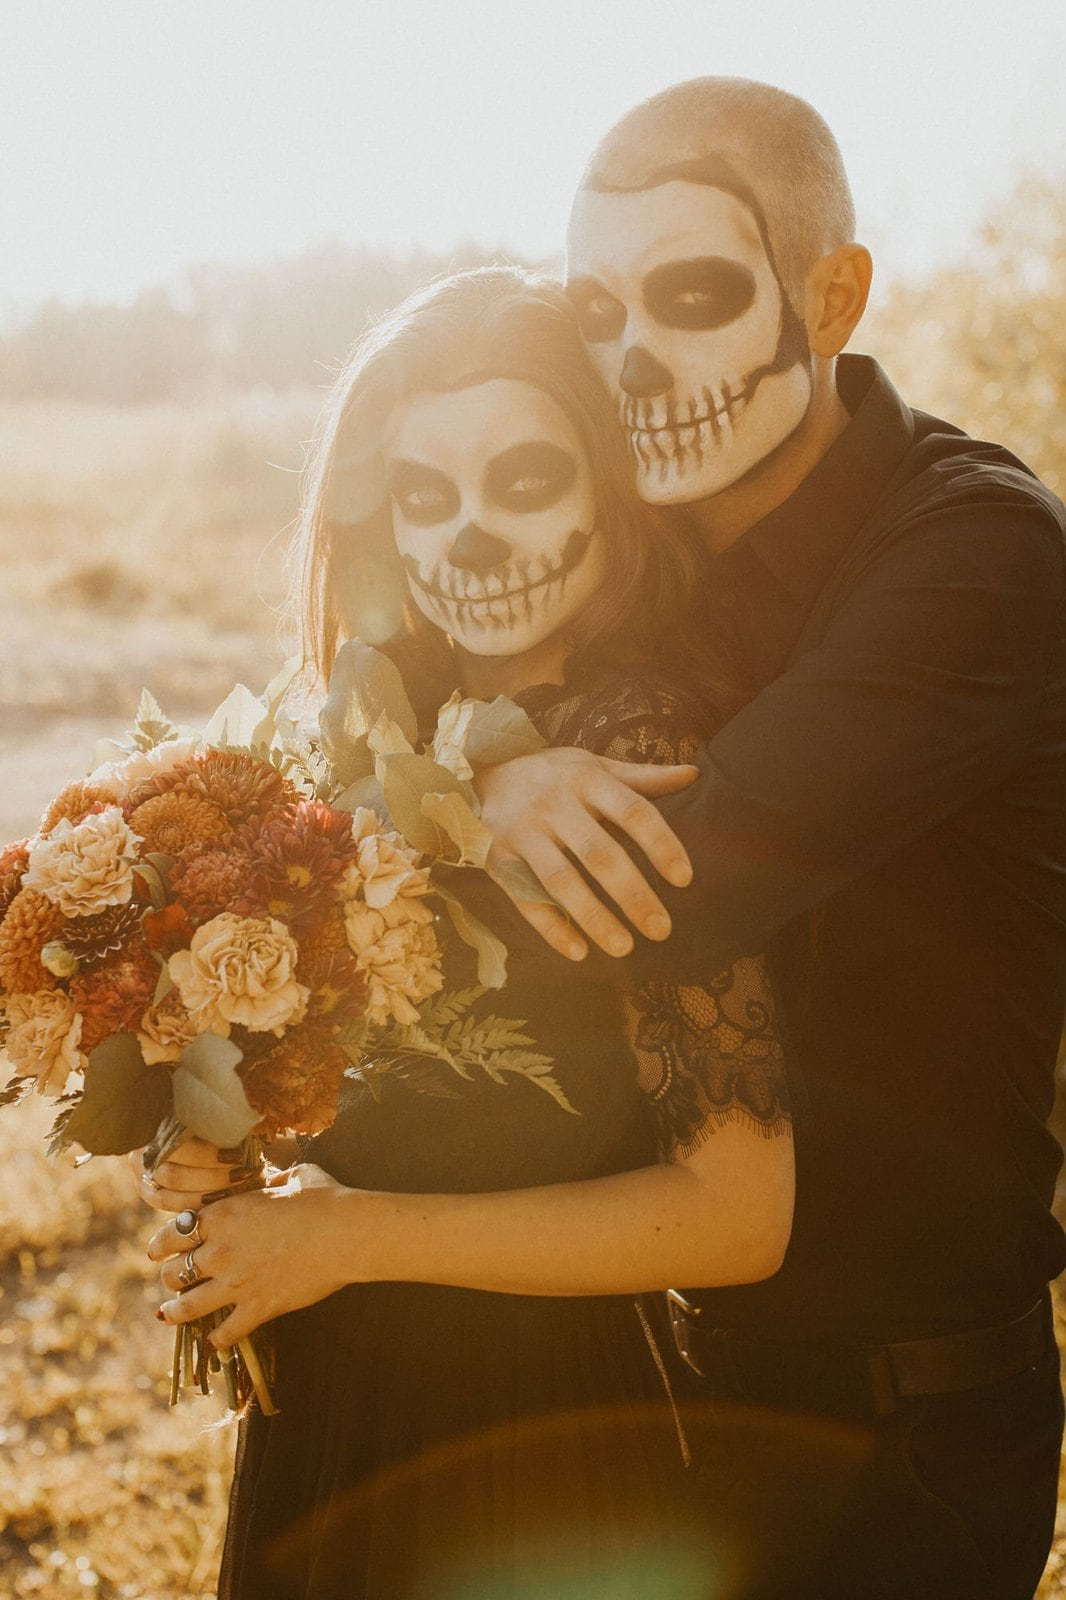 couple embrace for Halloween inspired shoot.